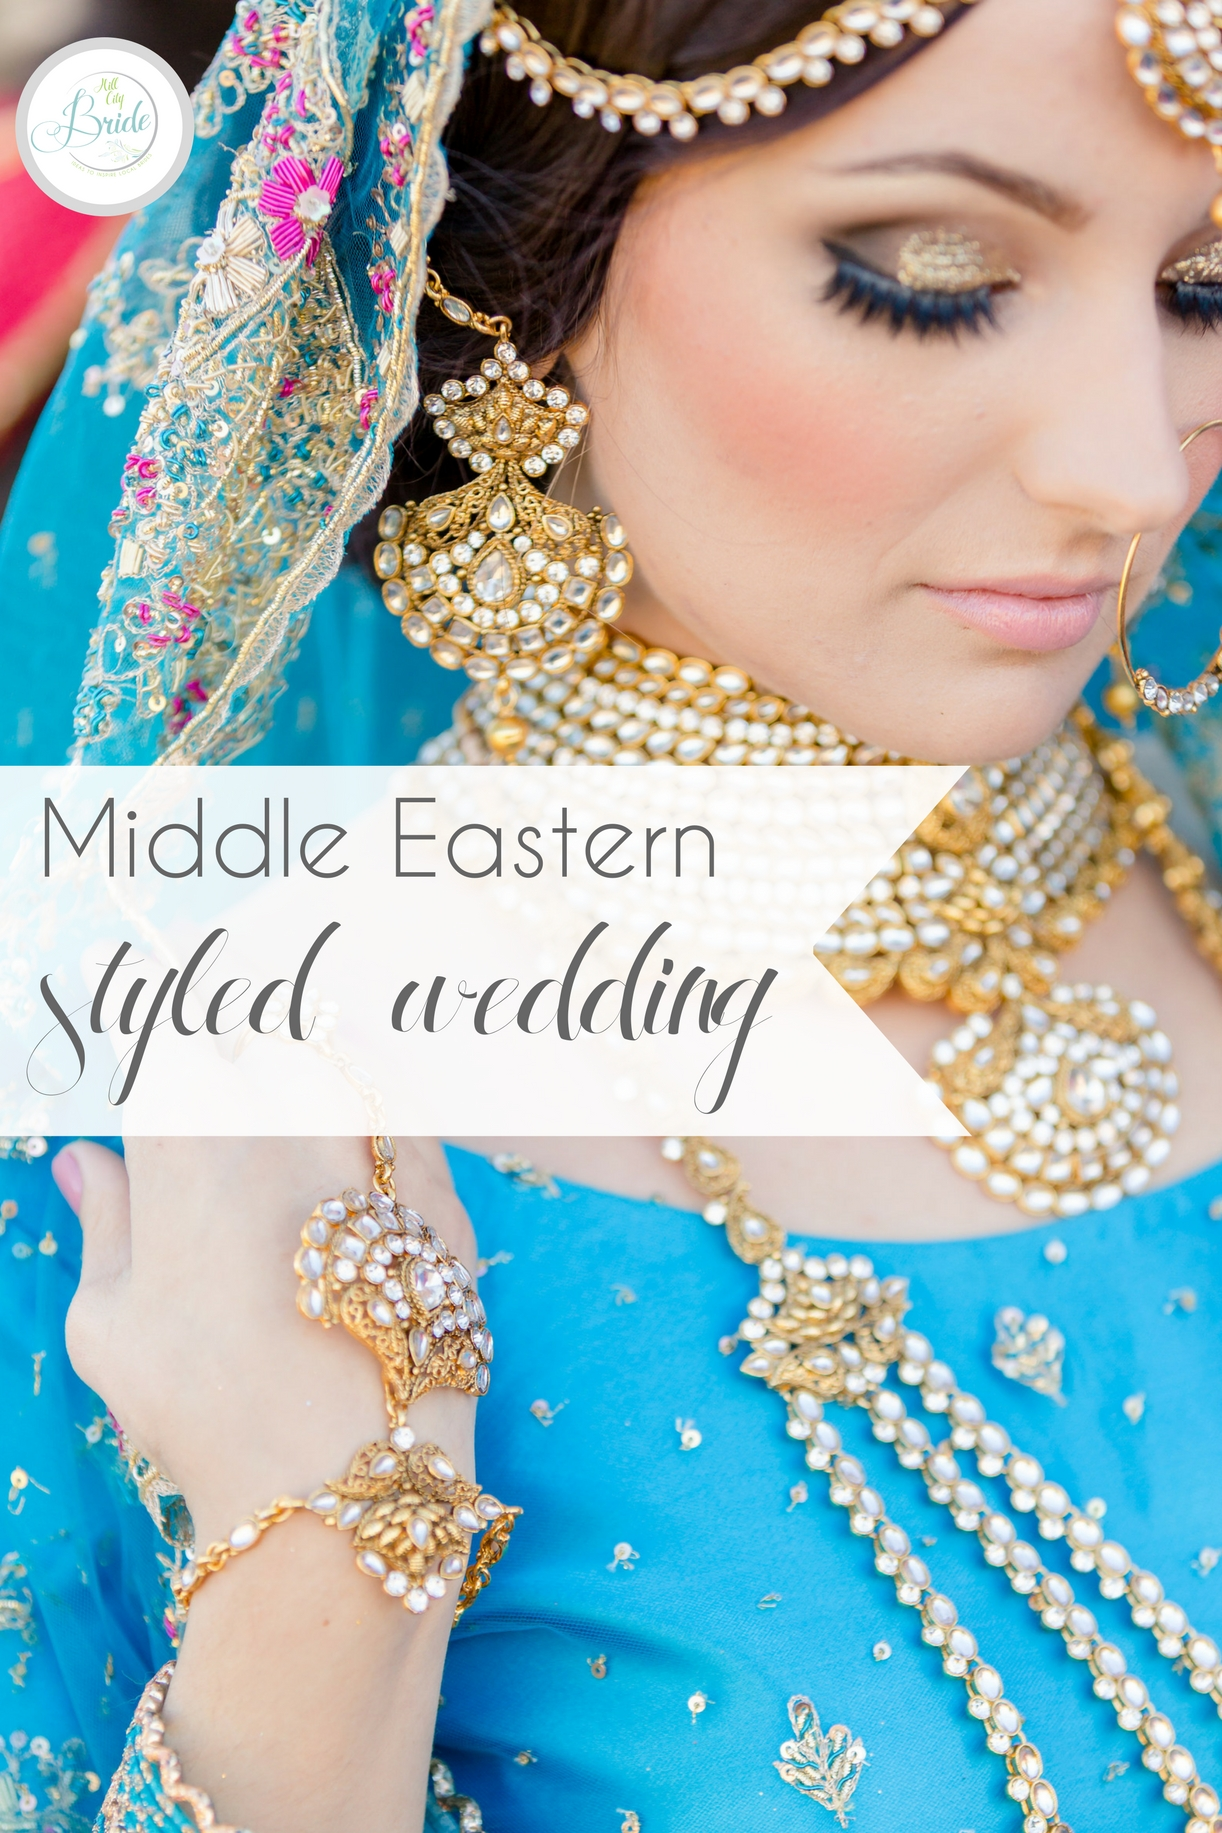 Middle Eastern Wedding {Styled Shoot} » Hill City Bride ...